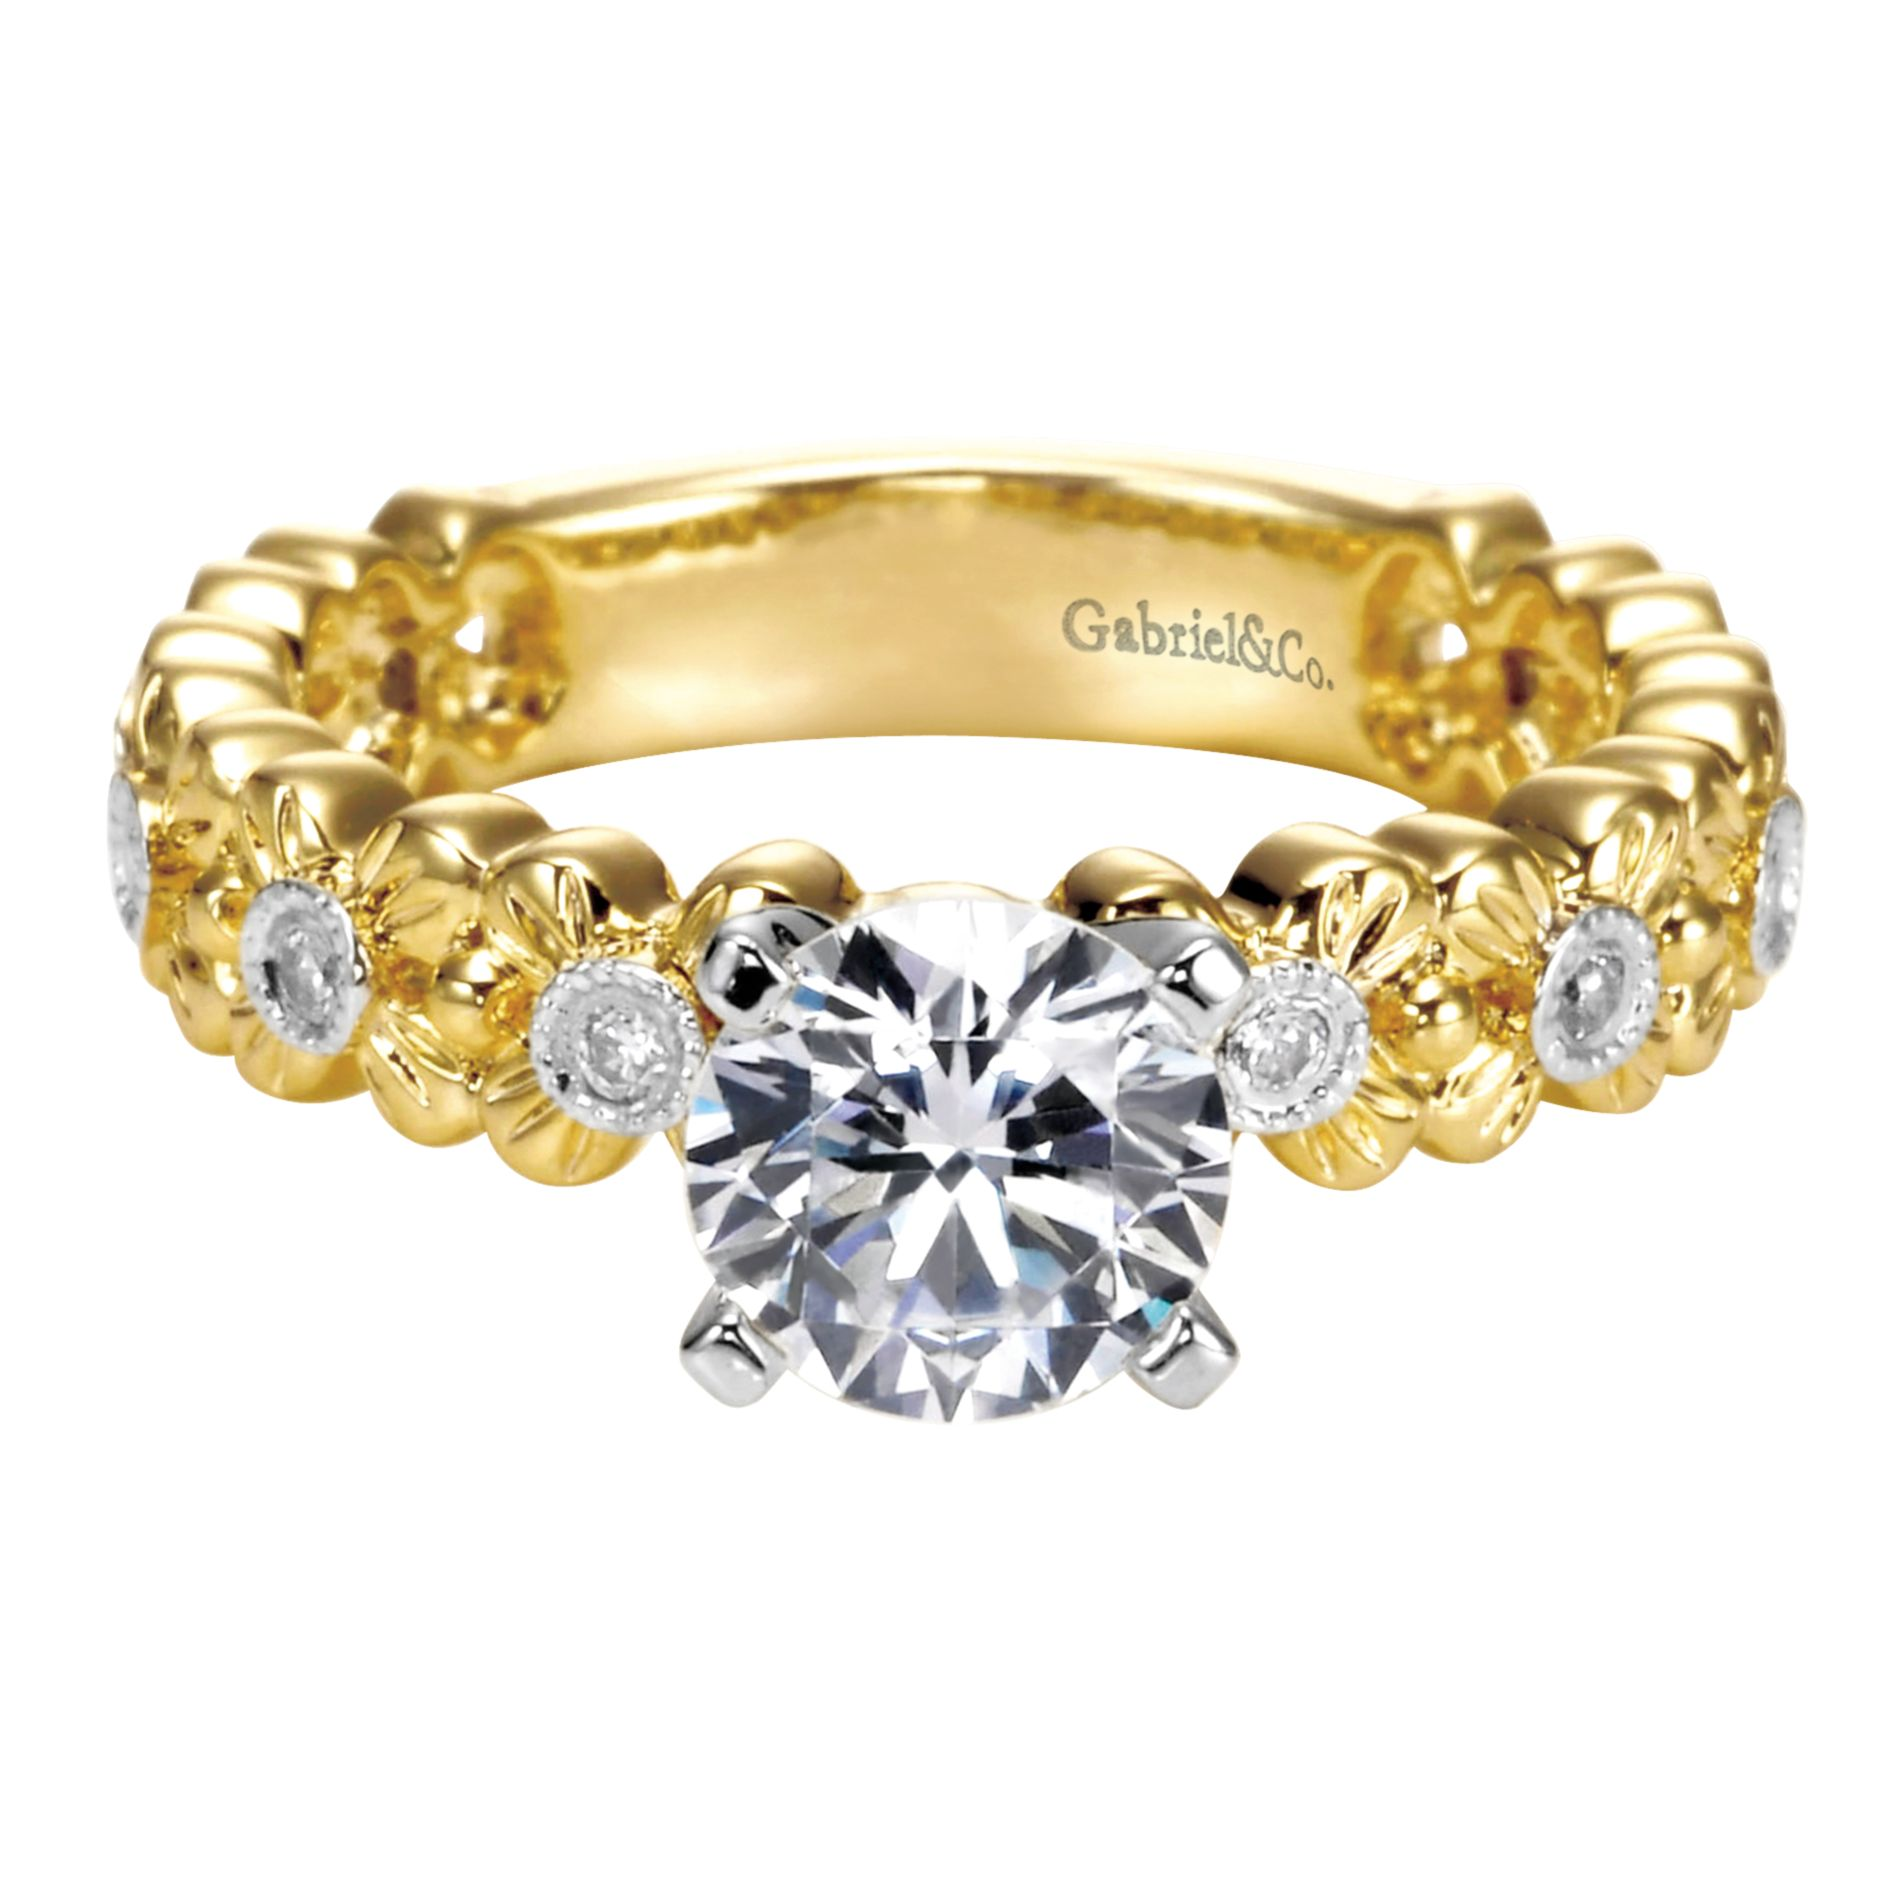 Engagement Rings - YELLOW GOLD ROUND STRAIGHT DIAMOND ENGAGEMENT RING